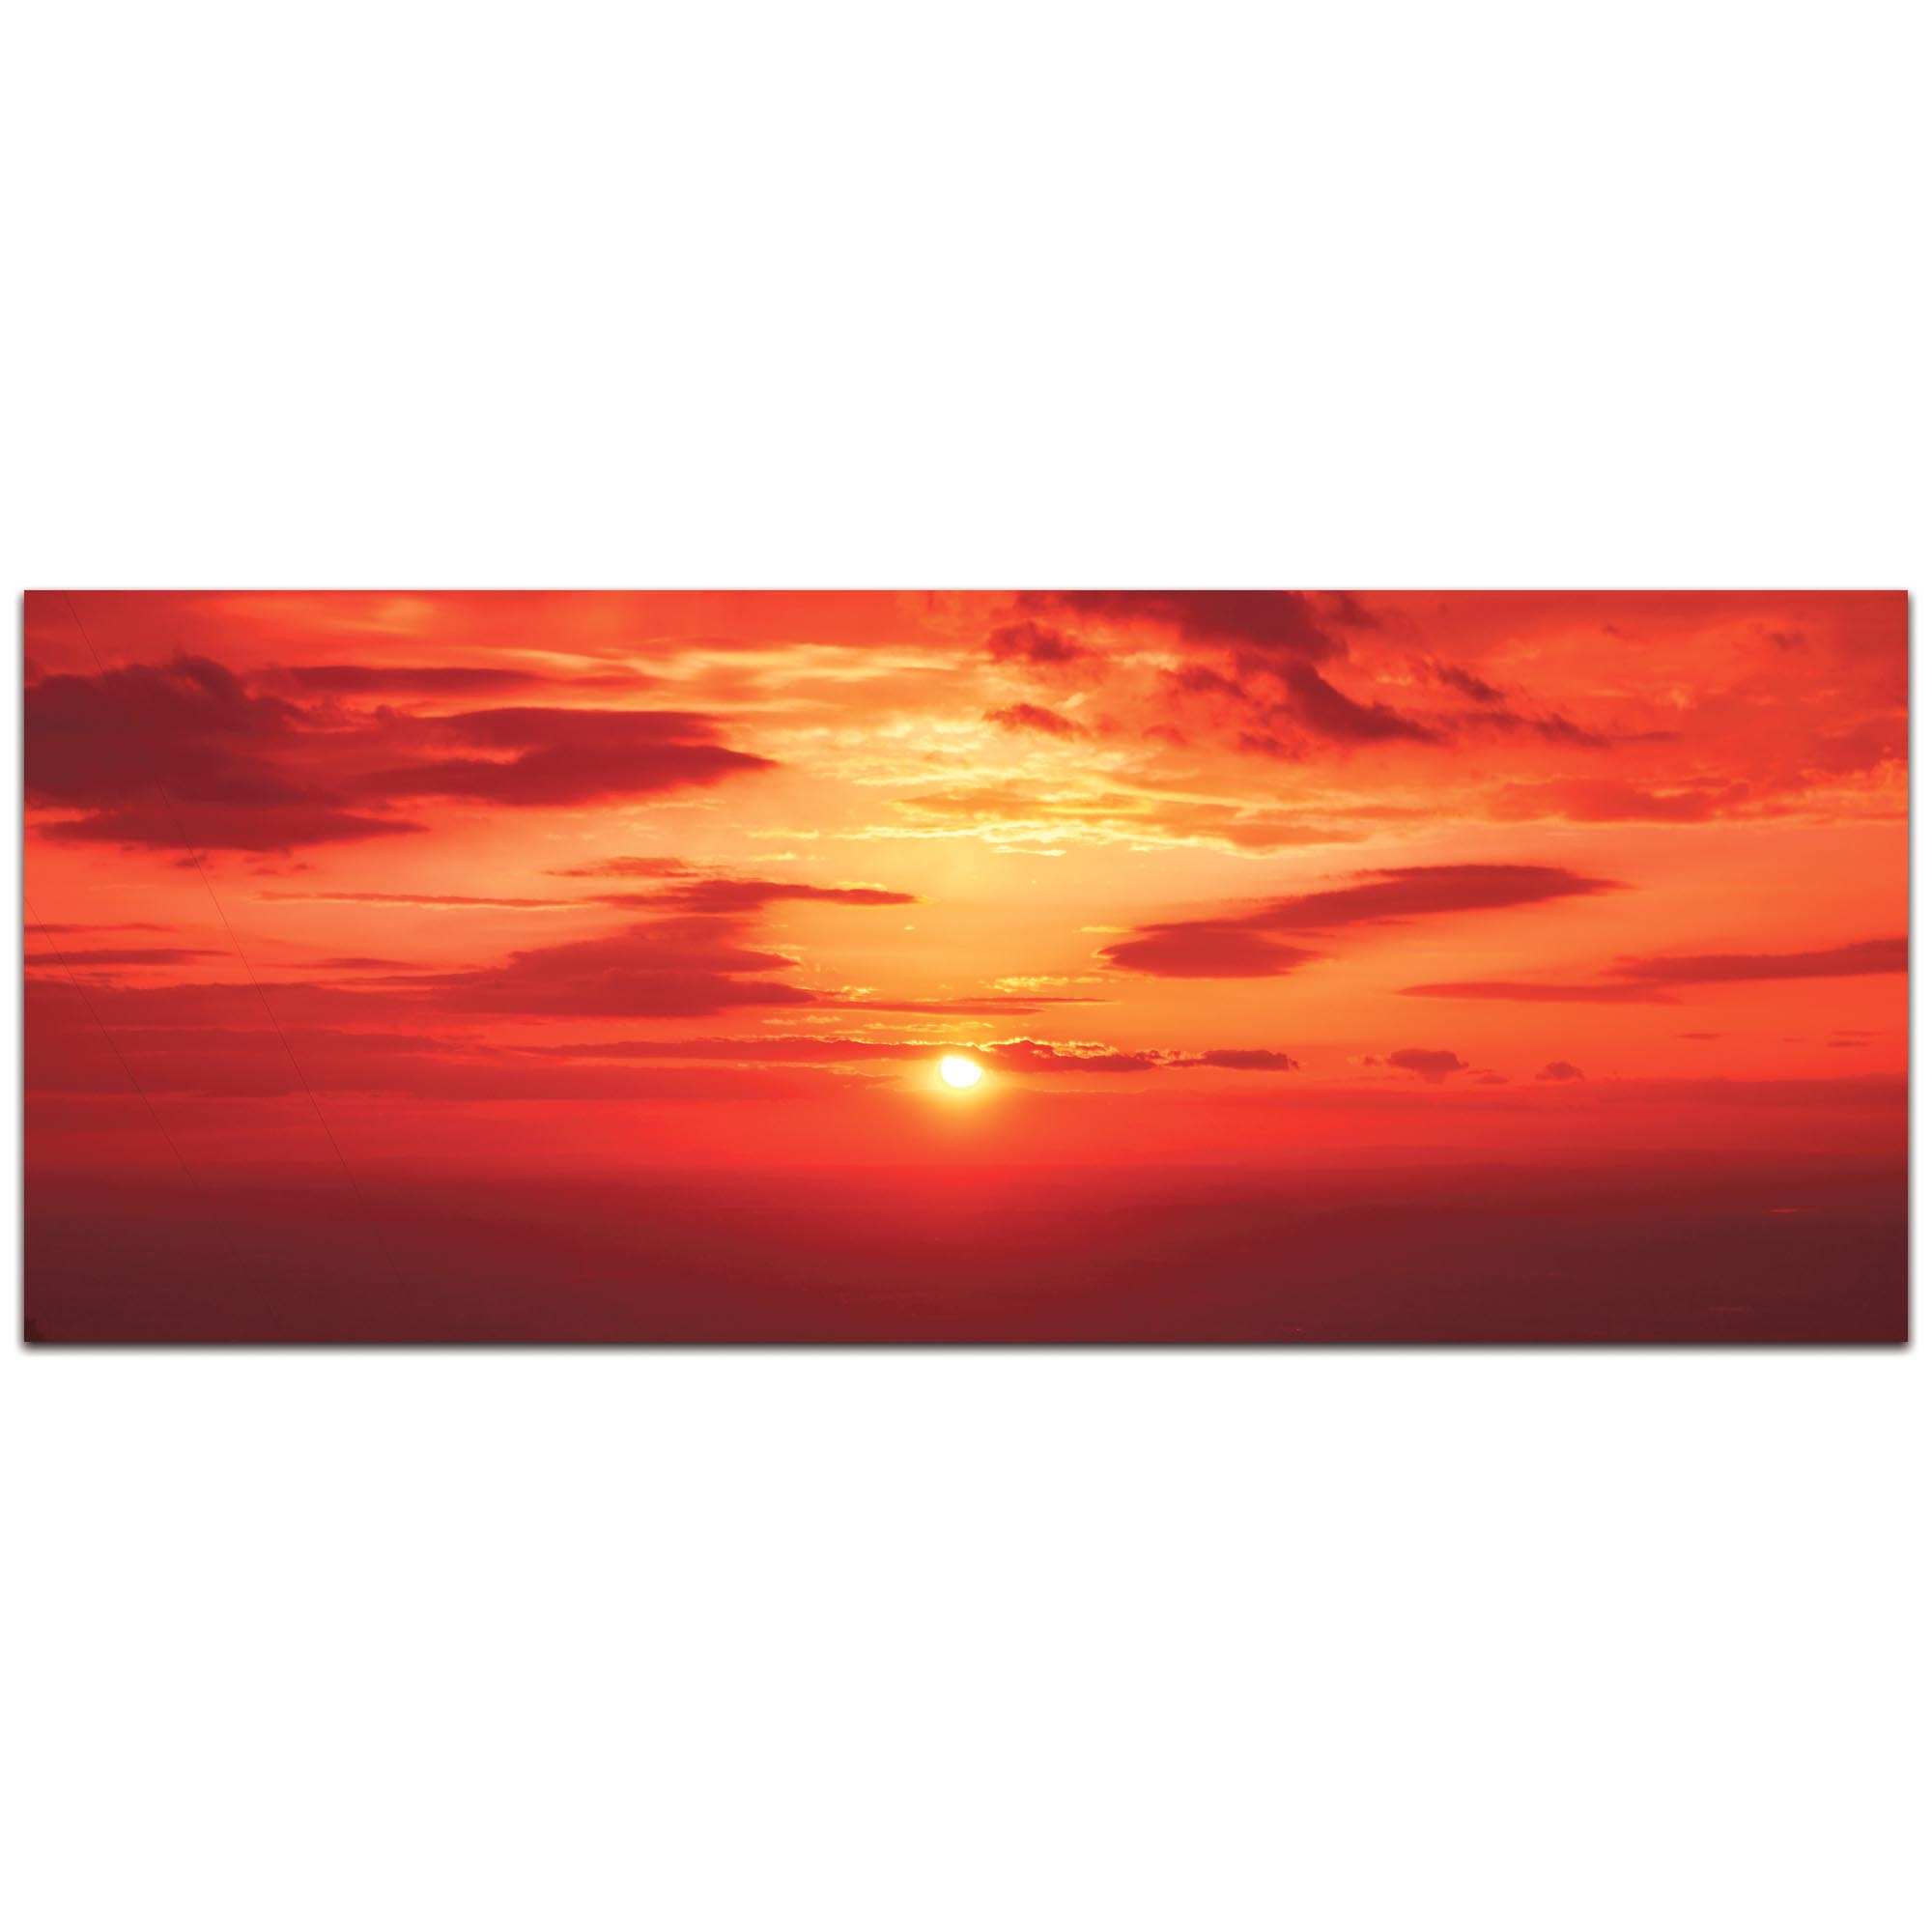 Landscape Photography 'Skies of Flame' - Sunset Art on Metal or Plexiglass